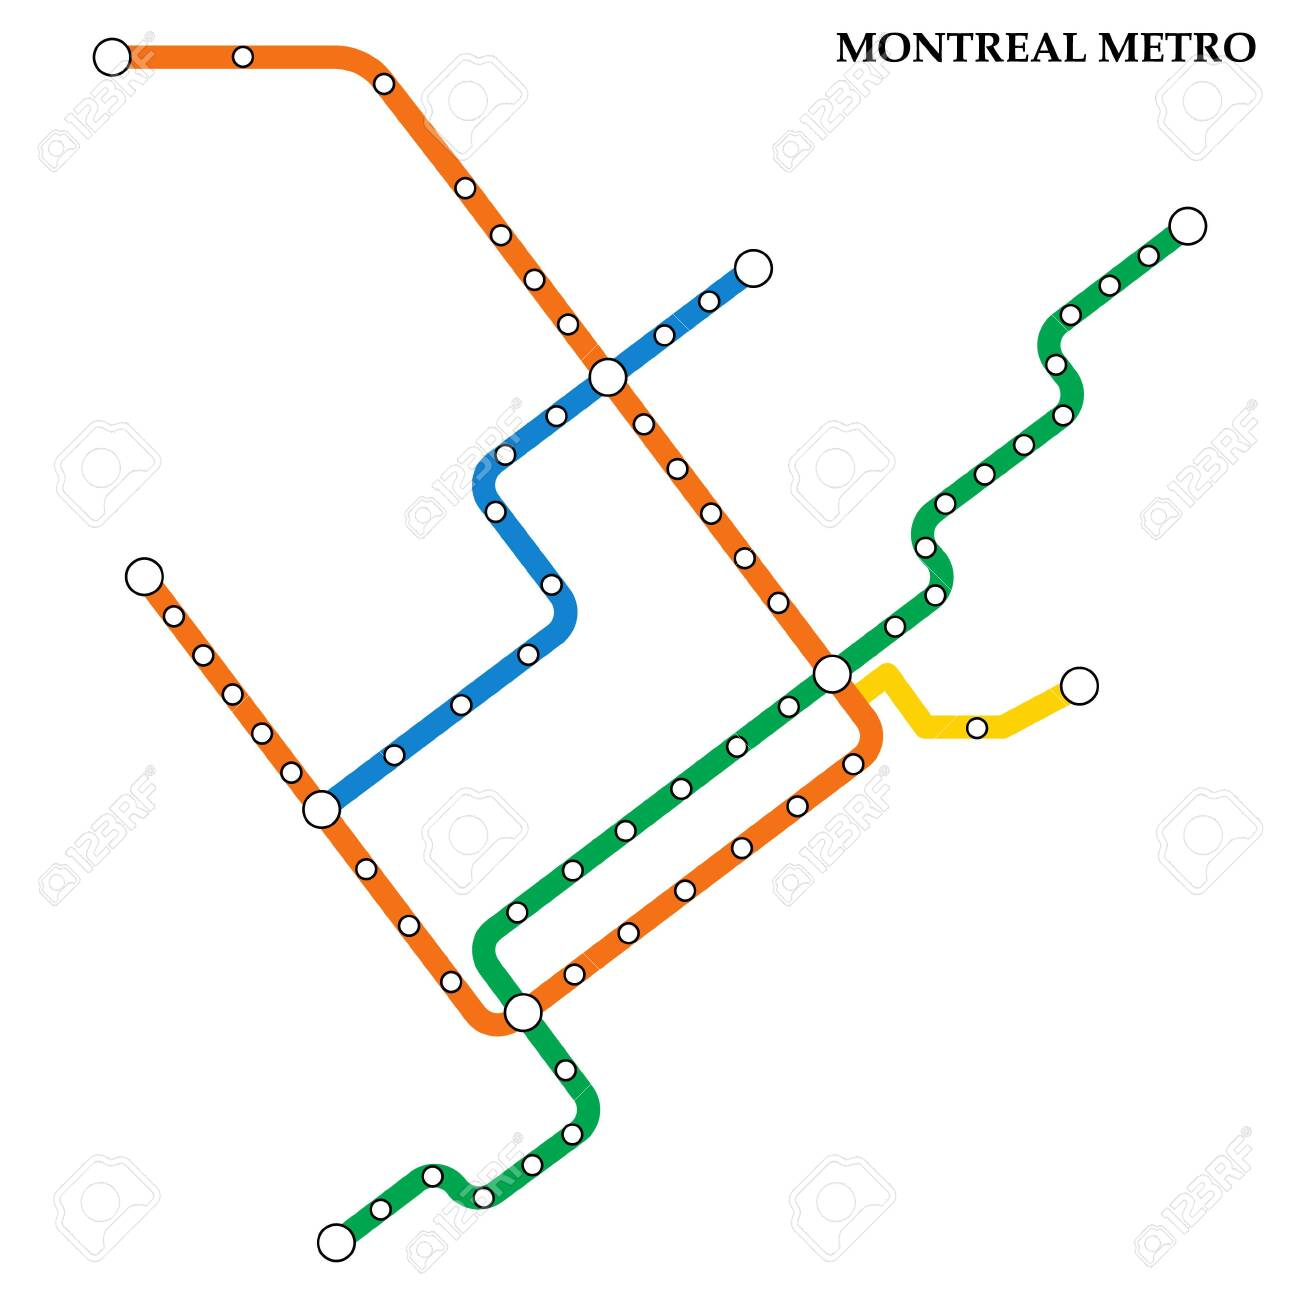 Montrela Subway Map.Map Of The Montreal Metro Subway Template Of City Transportation